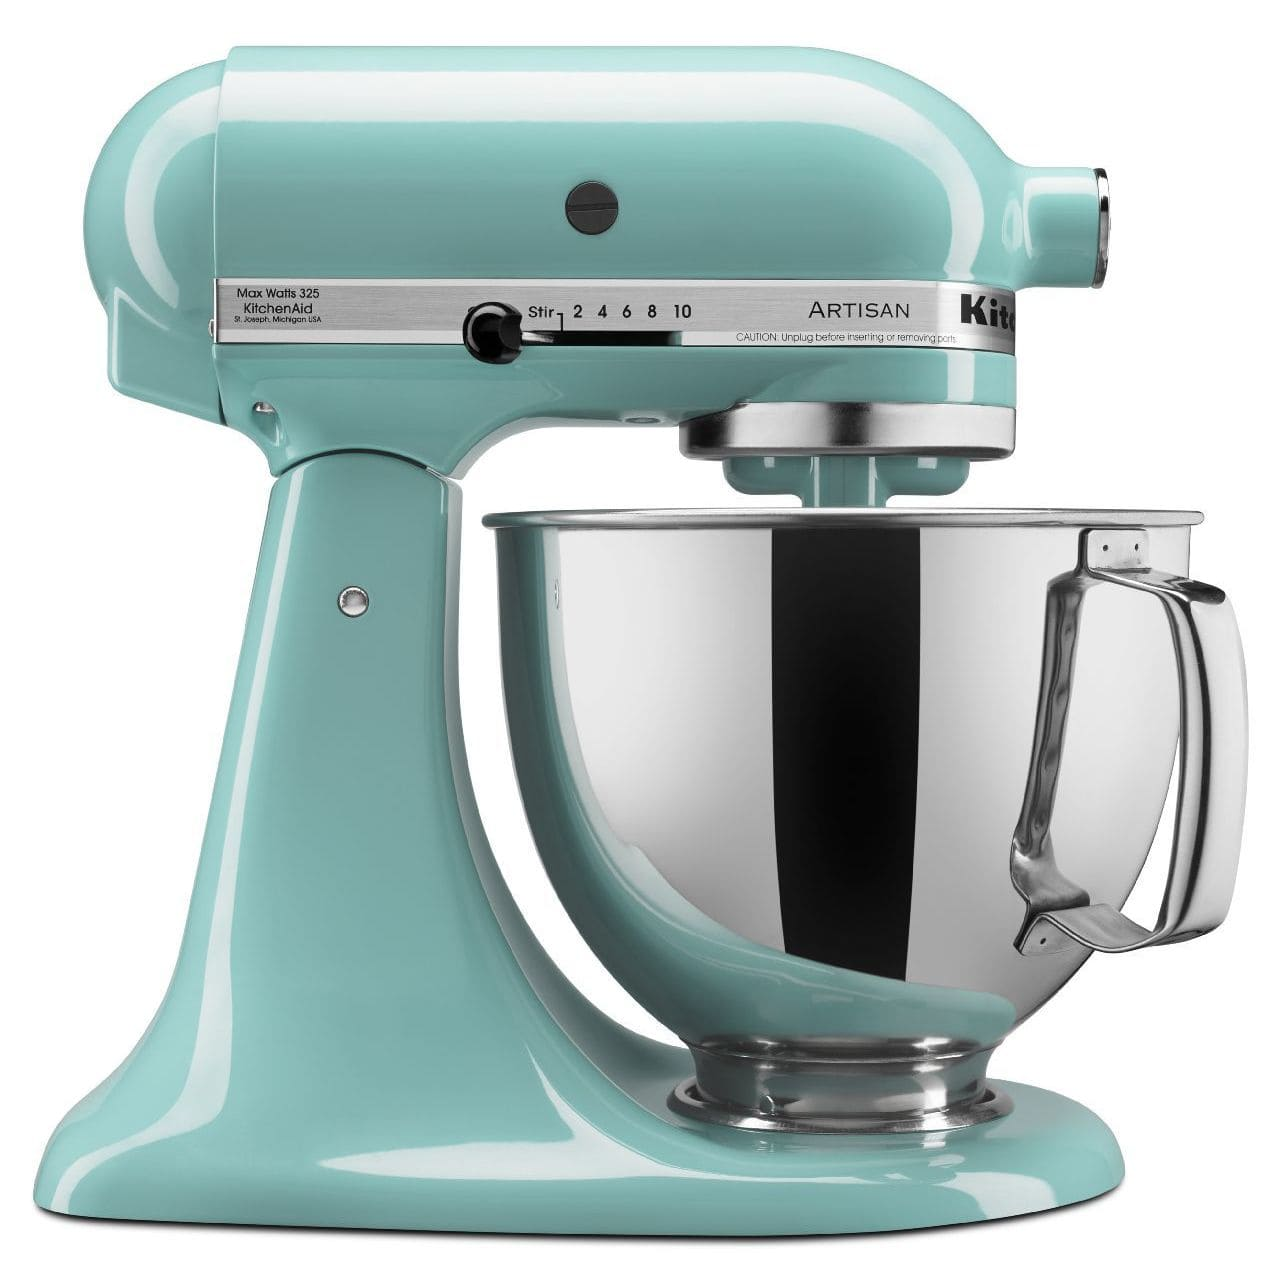 KitchenAid KSM150PS 5-Quart Artisan Tilt-Head Stand Mixer